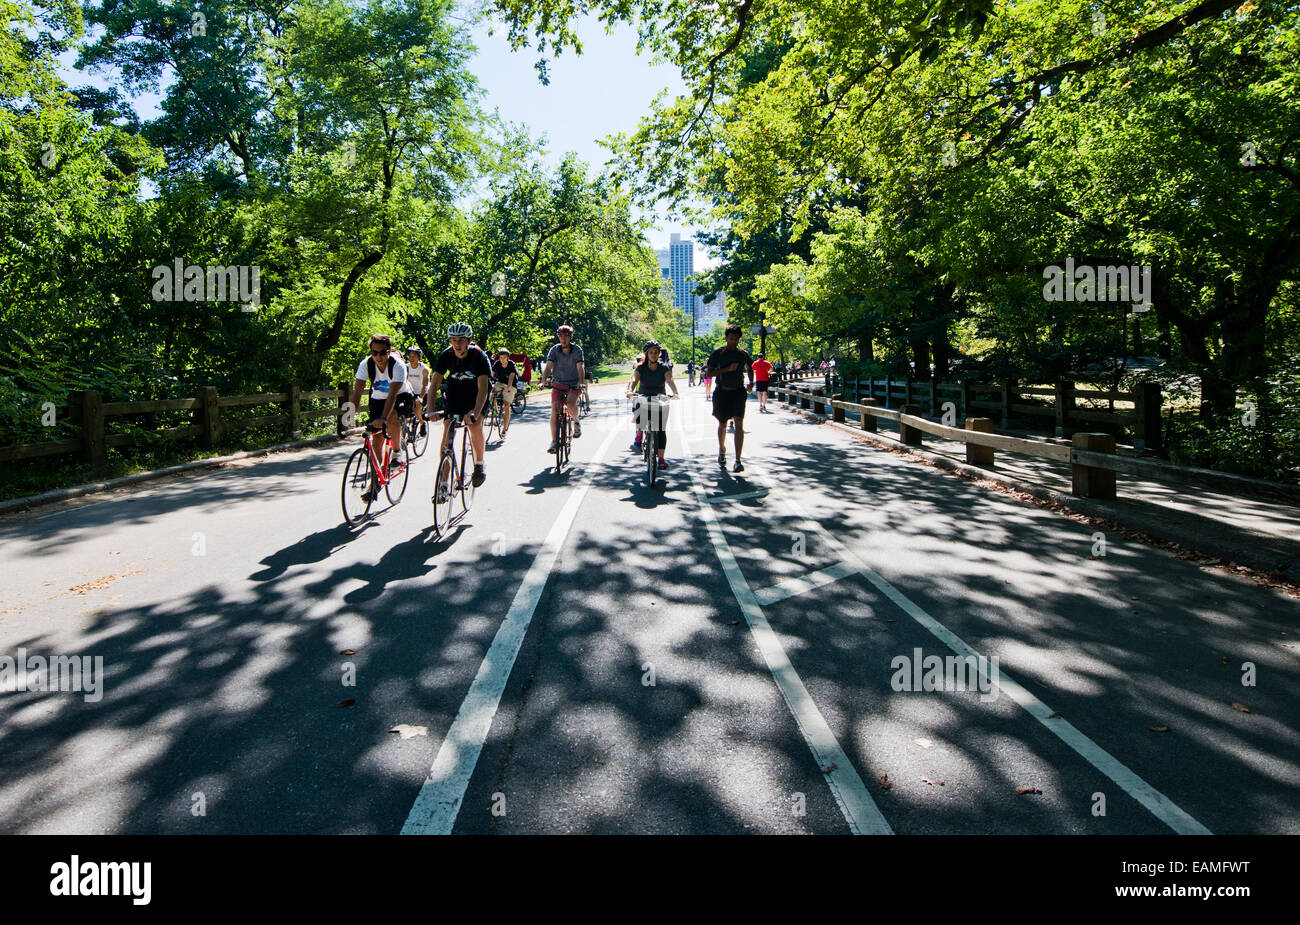 group of bicyclists in Central Park in New York city - Stock Image